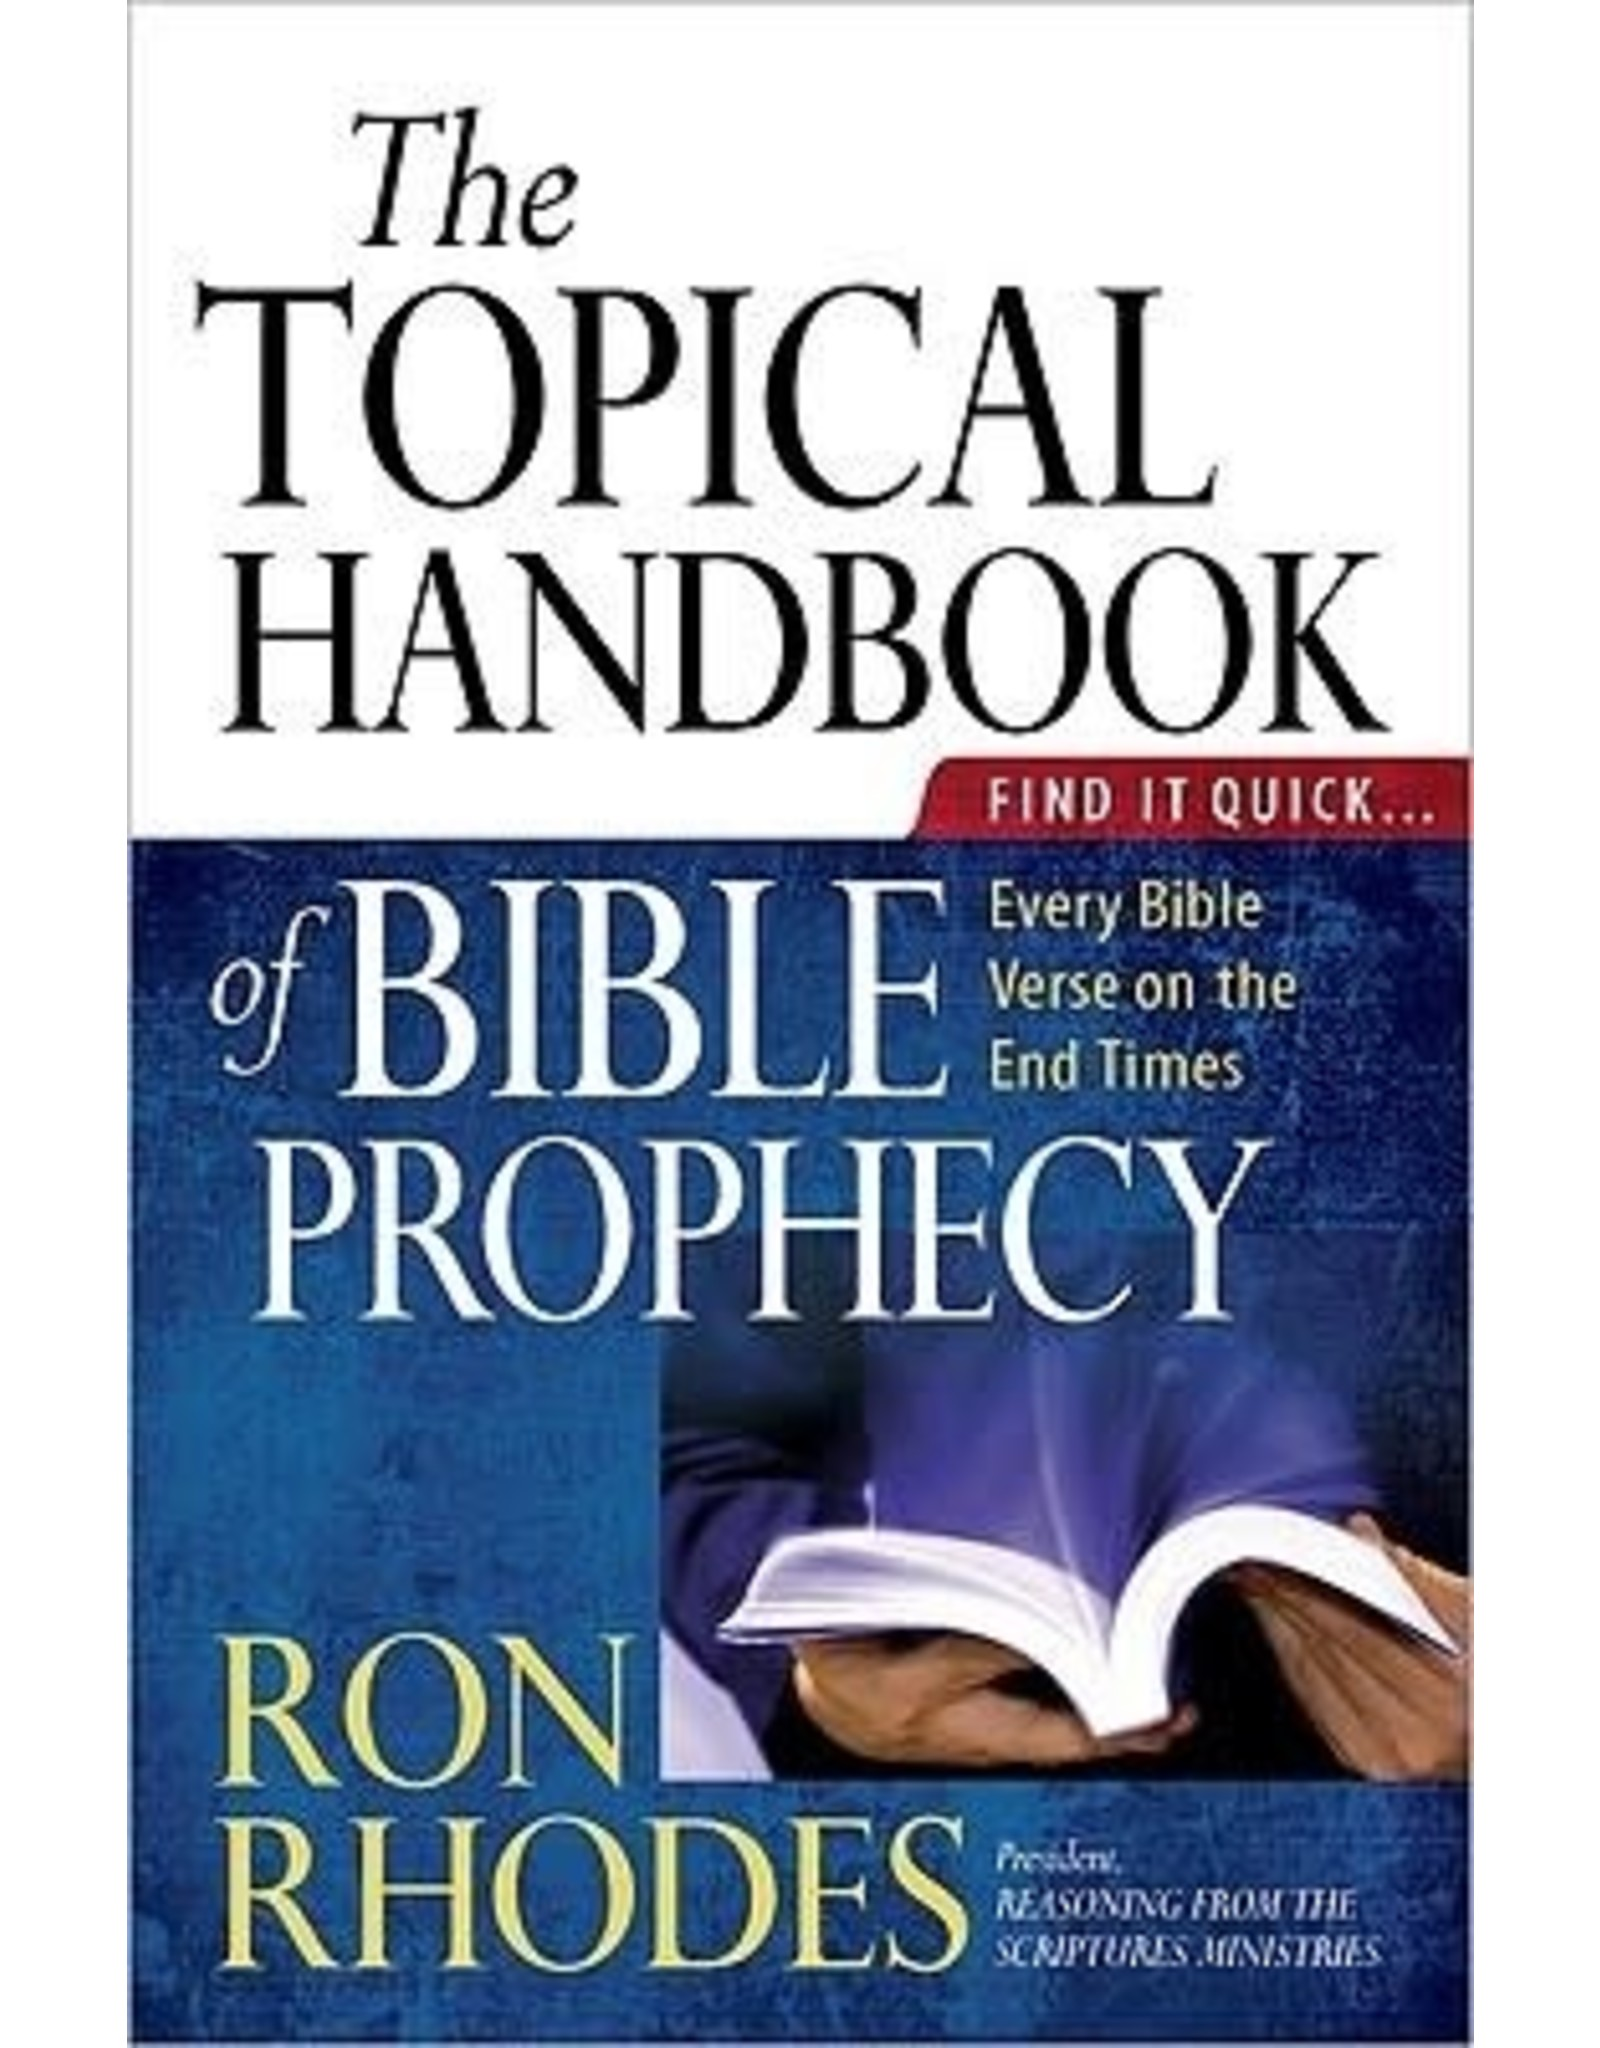 Rhodes The Topical Handbook of Bible Prophecy